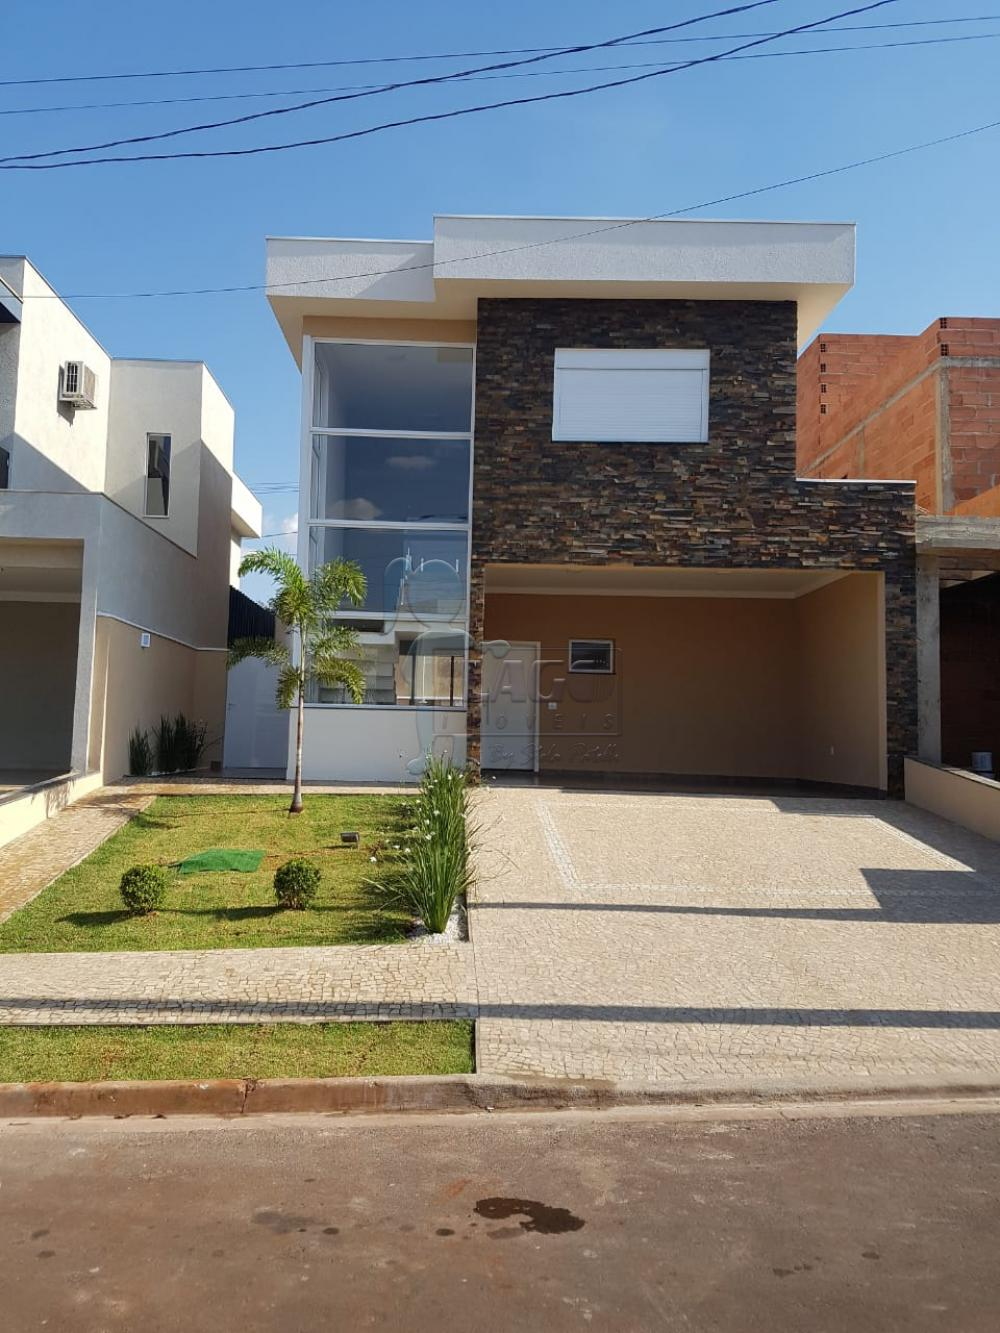 Ribeirao Preto Casa Venda R$870.000,00 Condominio R$319,00 3 Dormitorios 3 Suites Area do terreno 252.19m2 Area construida 201.00m2